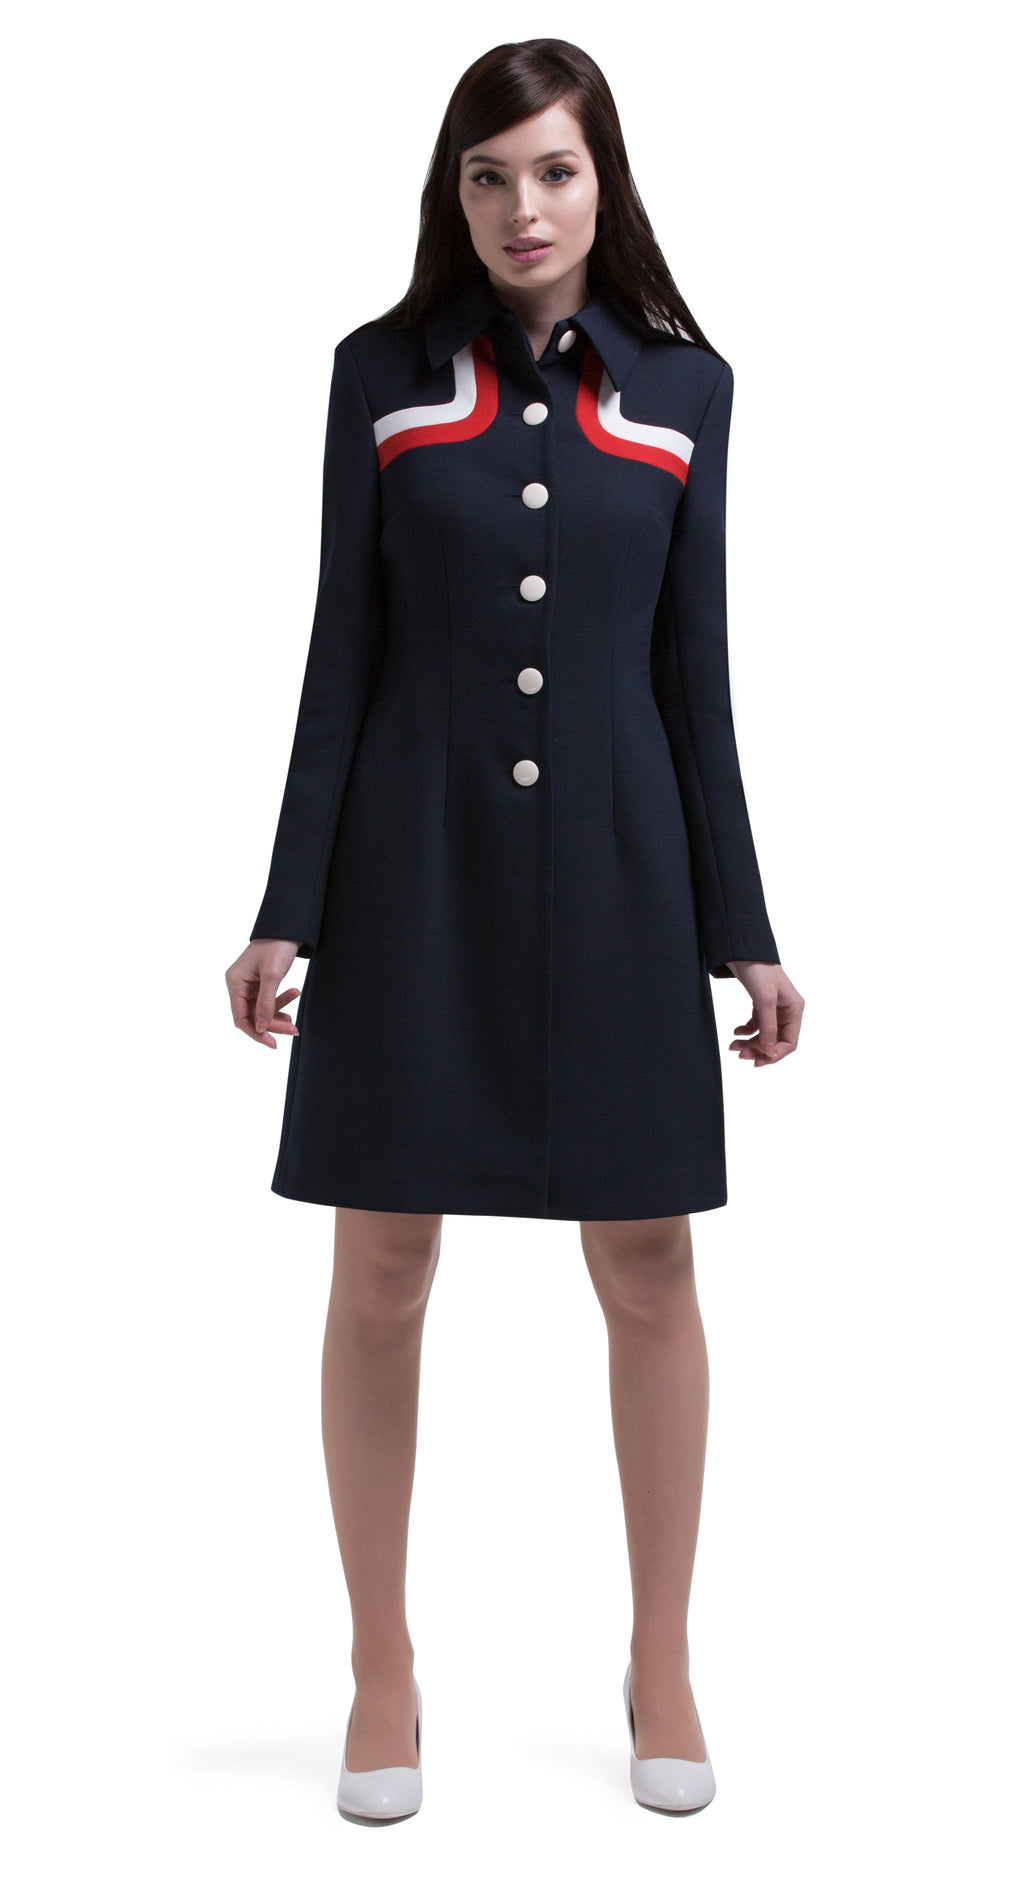 Another immediately sixties mod Autumn coat that allows for the timeless tri-colour of navy blue, red and light cream to produce a dramatic silhouette. A straight cut featuring a classic collar, fully lined Italian mill fabric, with functioning side pockets, animated white button front closure and a cool retro striped neckline.  An entrance maker over plain dresses within the tricolour colour range or paired perfectly with matching dress to complete this high fashion very wearable set.